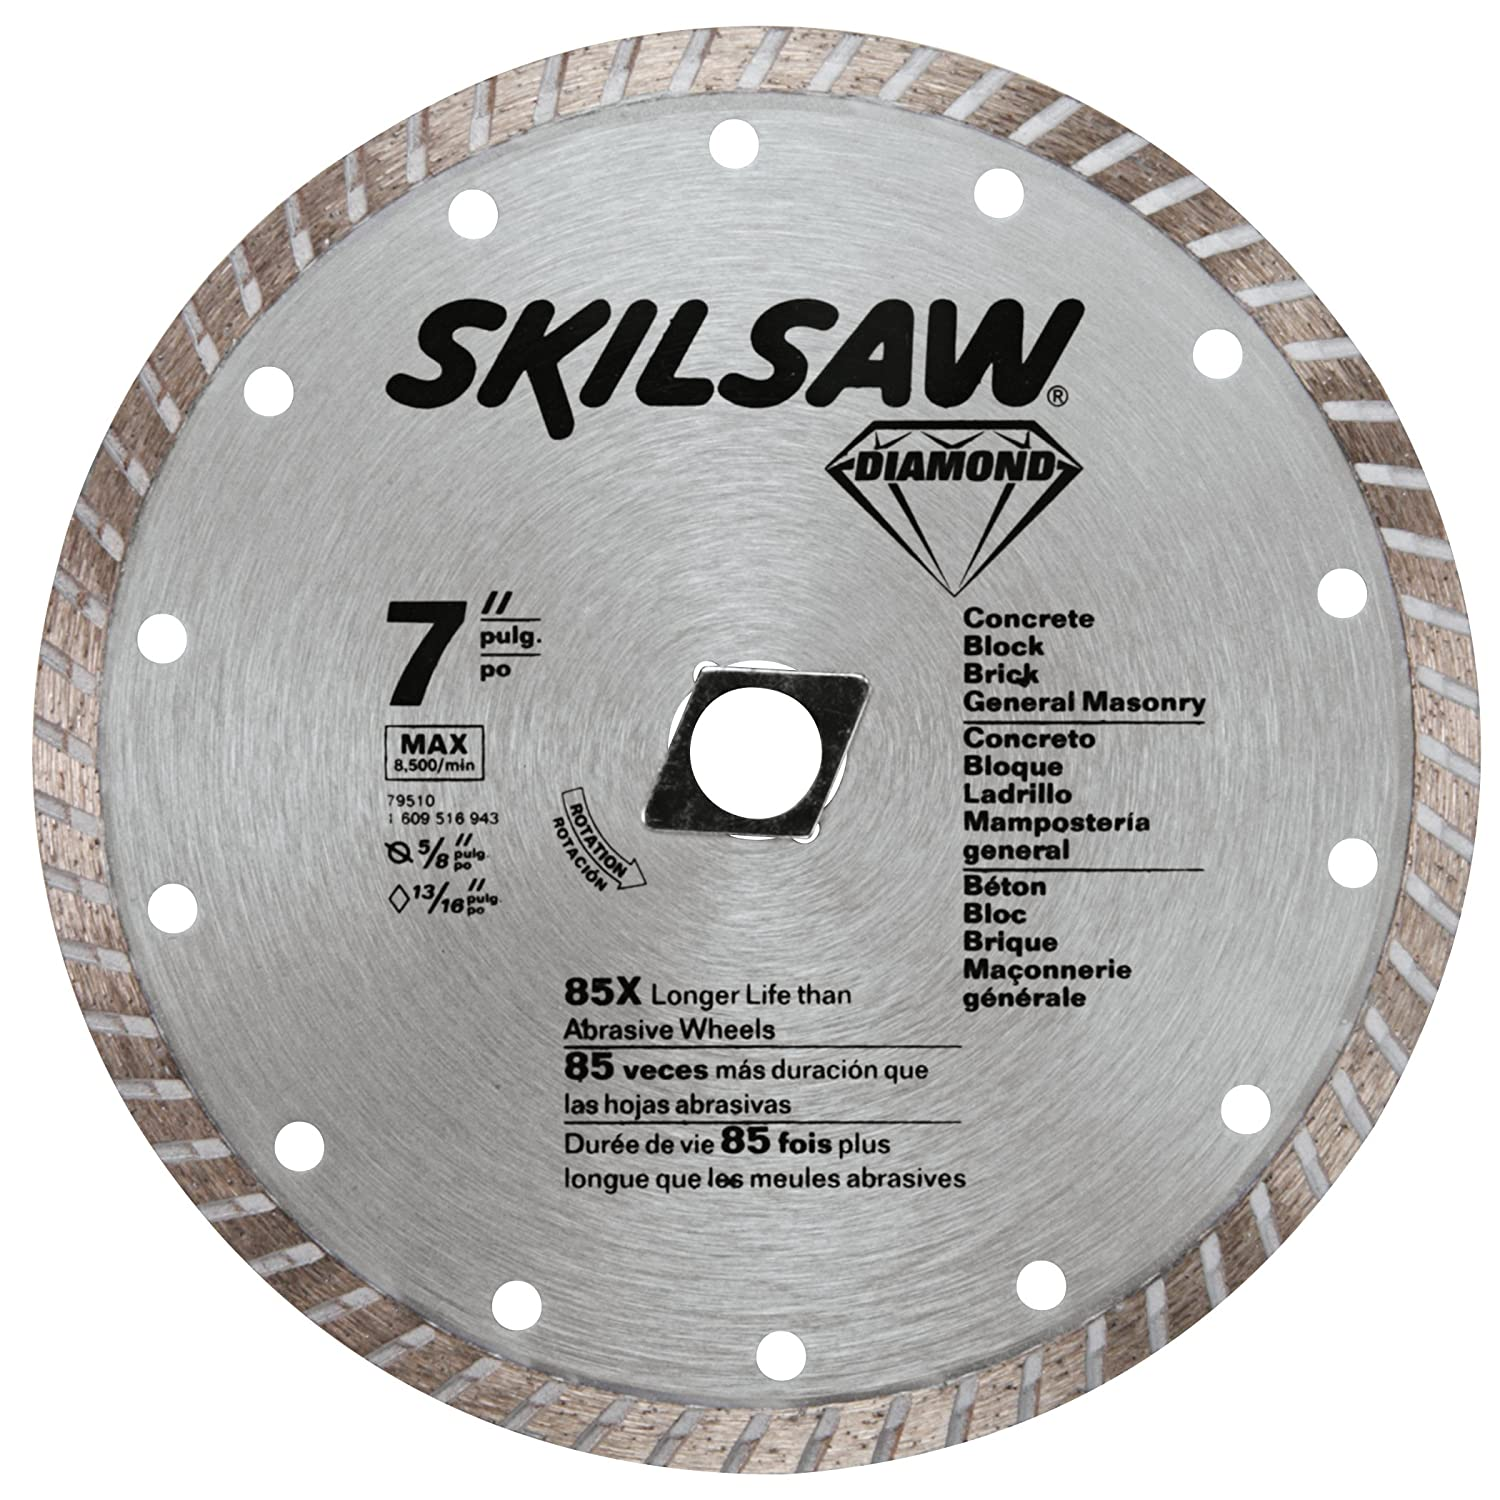 Skil 79510 7 inch turbo rim diamond saw blade with 58 inch or skil 79510 7 inch turbo rim diamond saw blade with 58 inch or diamond knockout arbor for masonry amazon greentooth Choice Image